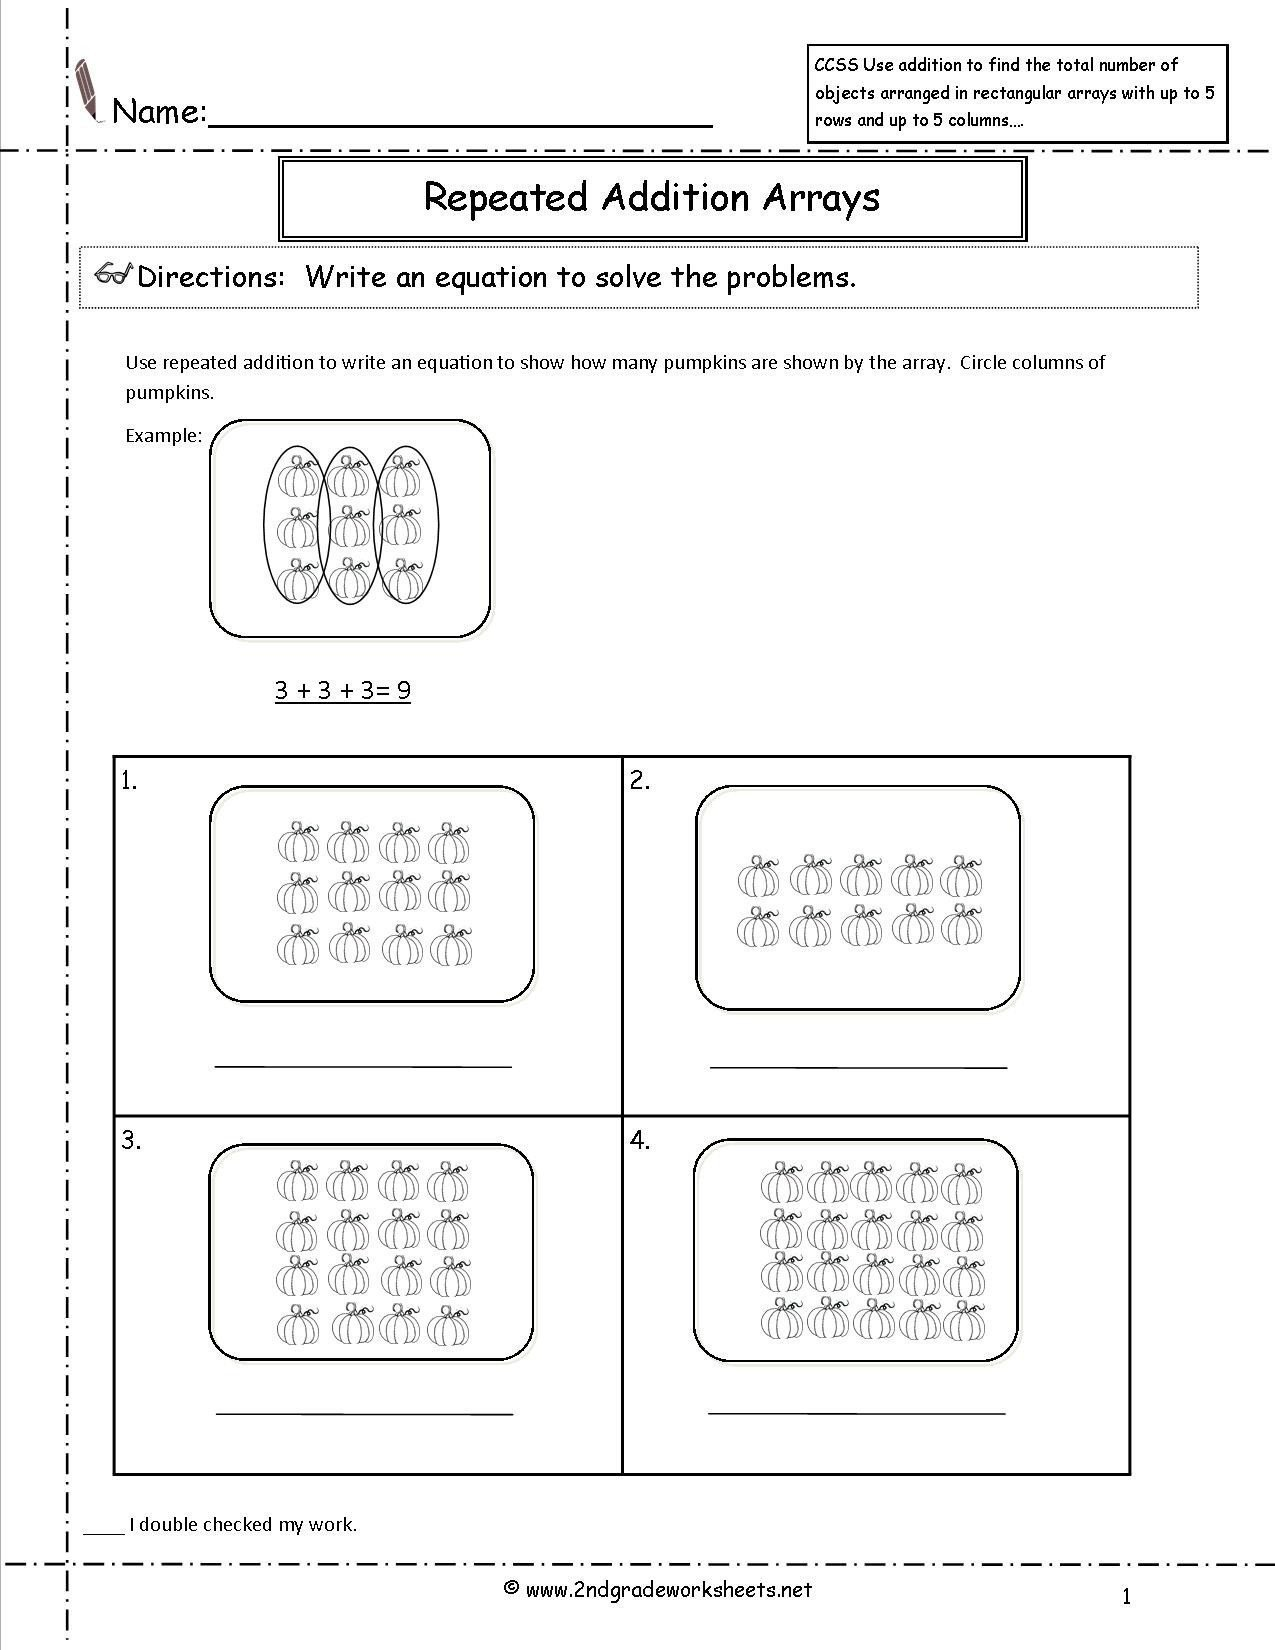 multiplication repeated addition worksheets ccss 2 oa 4 worksheets of multiplication repeated addition worksheets